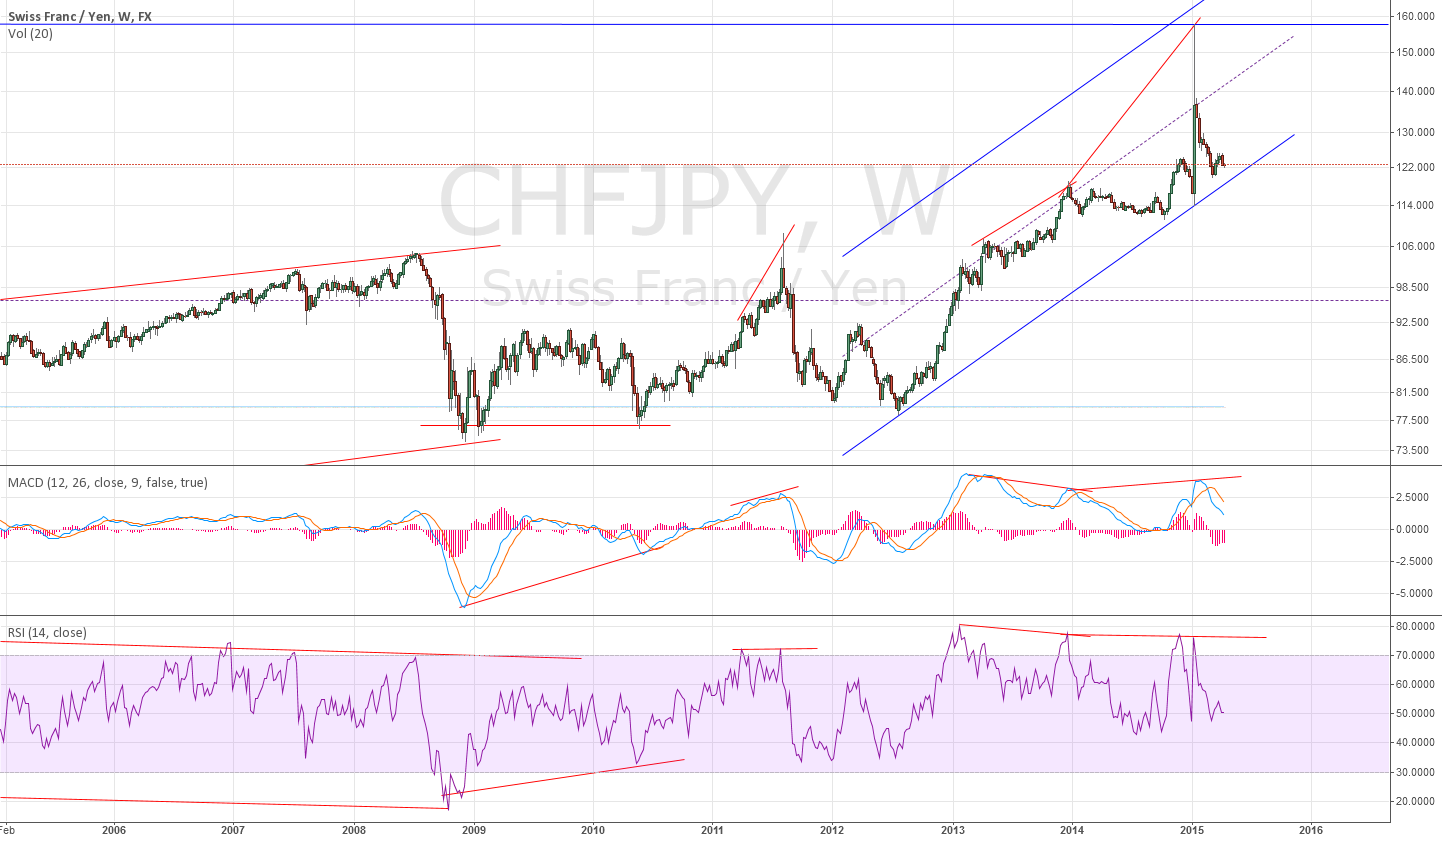 Weekly for CHFJPY divergence ~